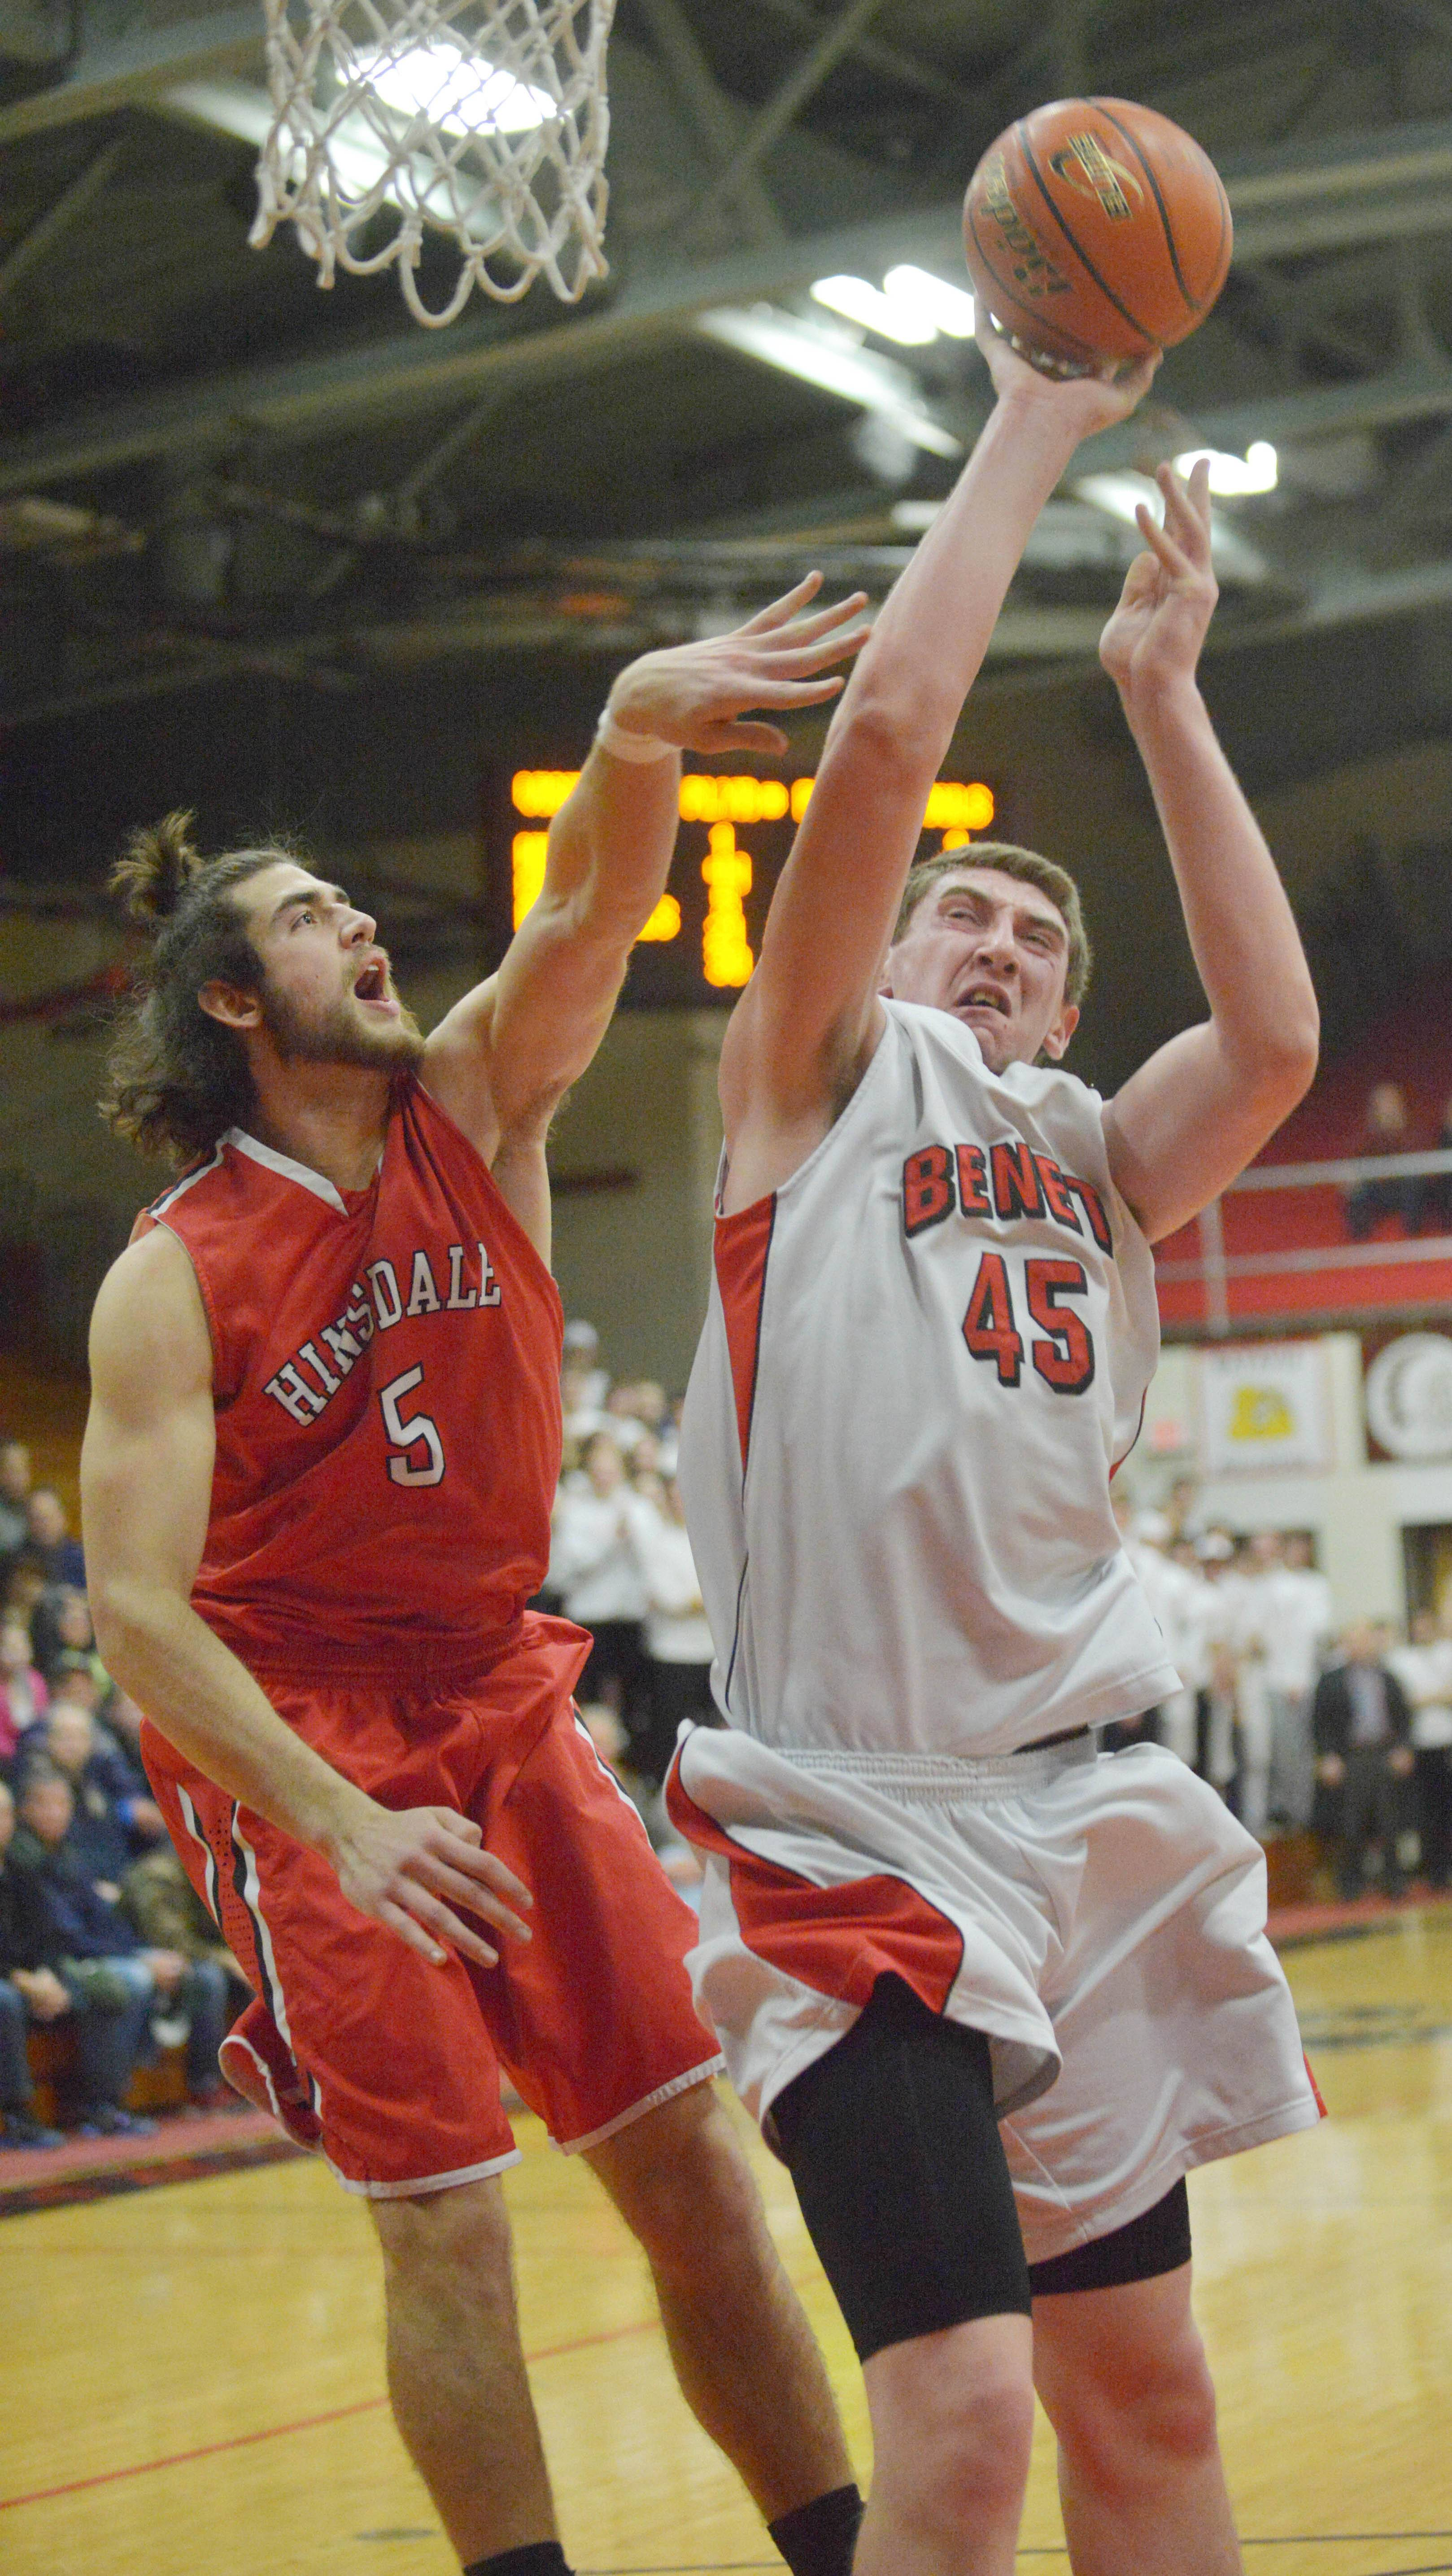 Ian Bunting (5) of Hinsdale Central and Sean O'Mara of Benet battle during Benet's Class 4A sectional semifinal win at East Aurora Tuesday.